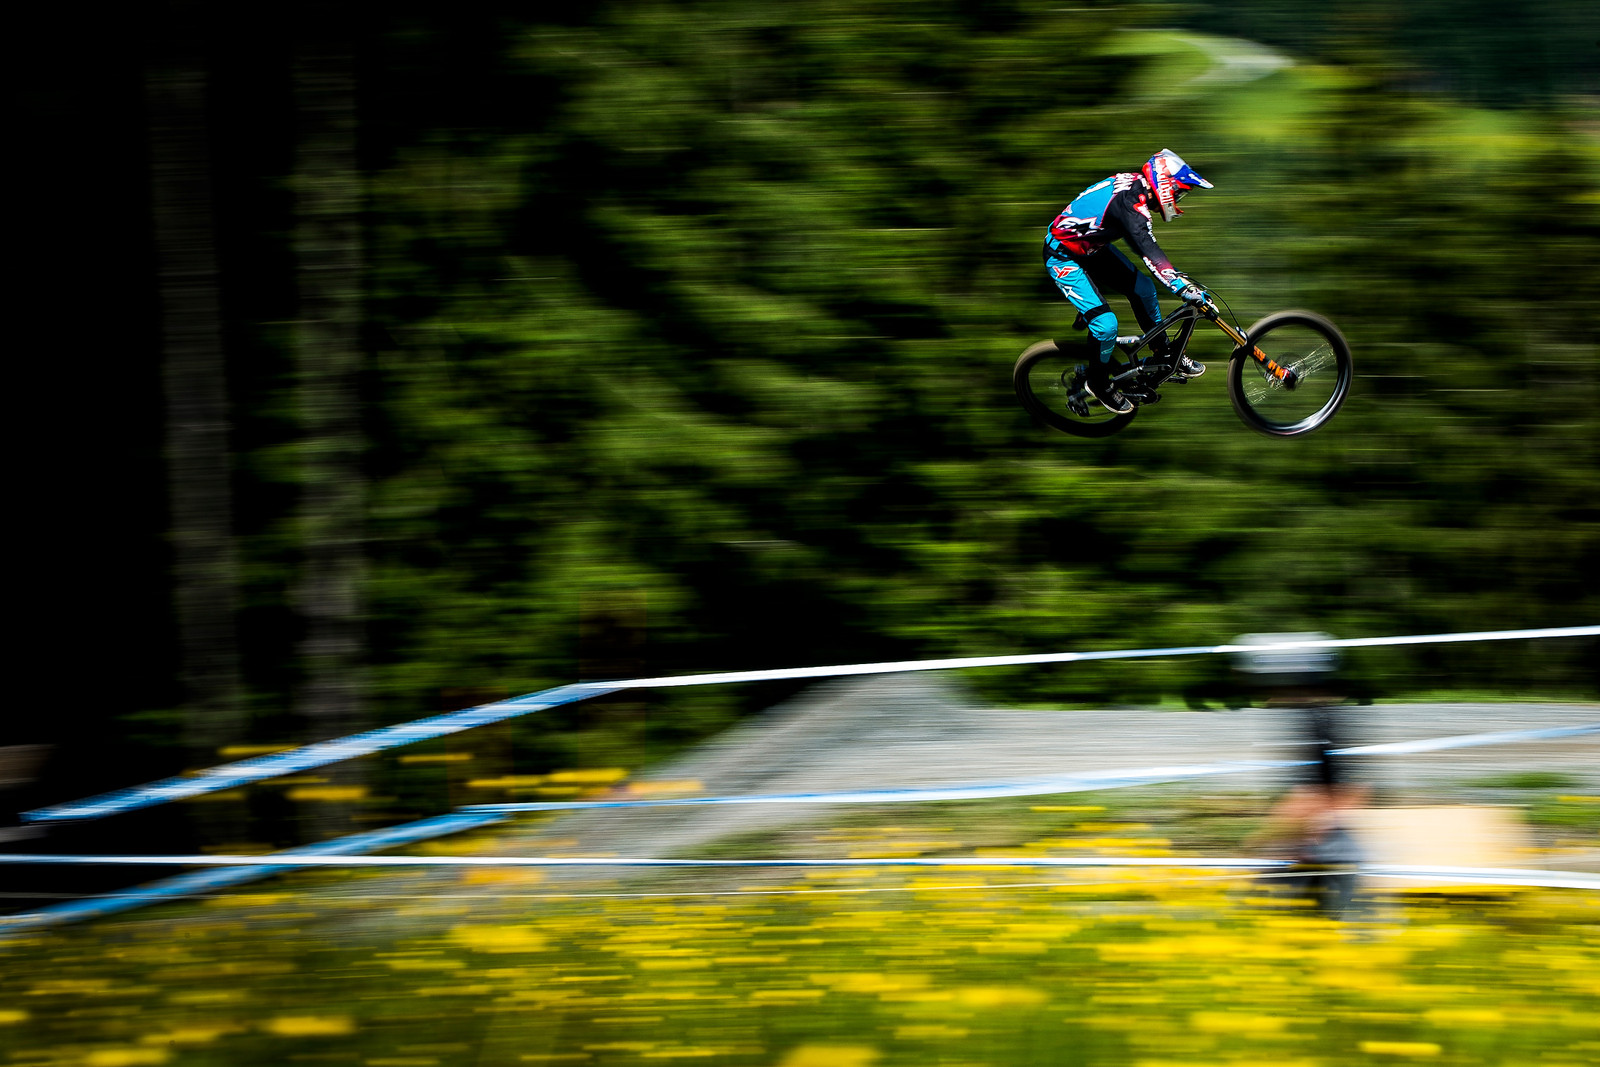 Aaron Gwin smashes the field at Leogang once again.